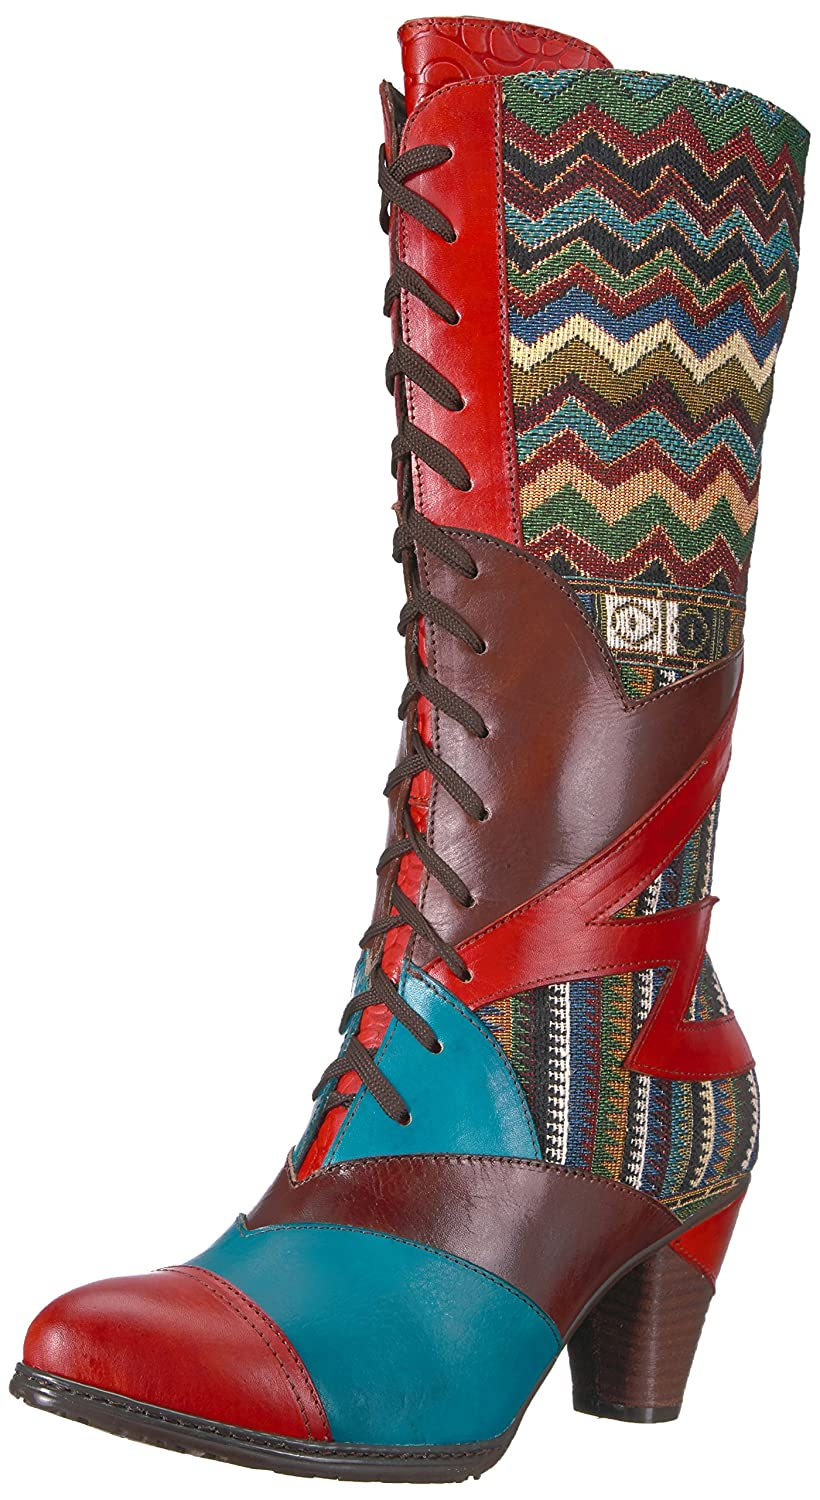 L'Artiste by Spring Step Women's Malag Boot B01EGTQ6B2 38 EU/7.5 - 8 M US|Orange/Multi